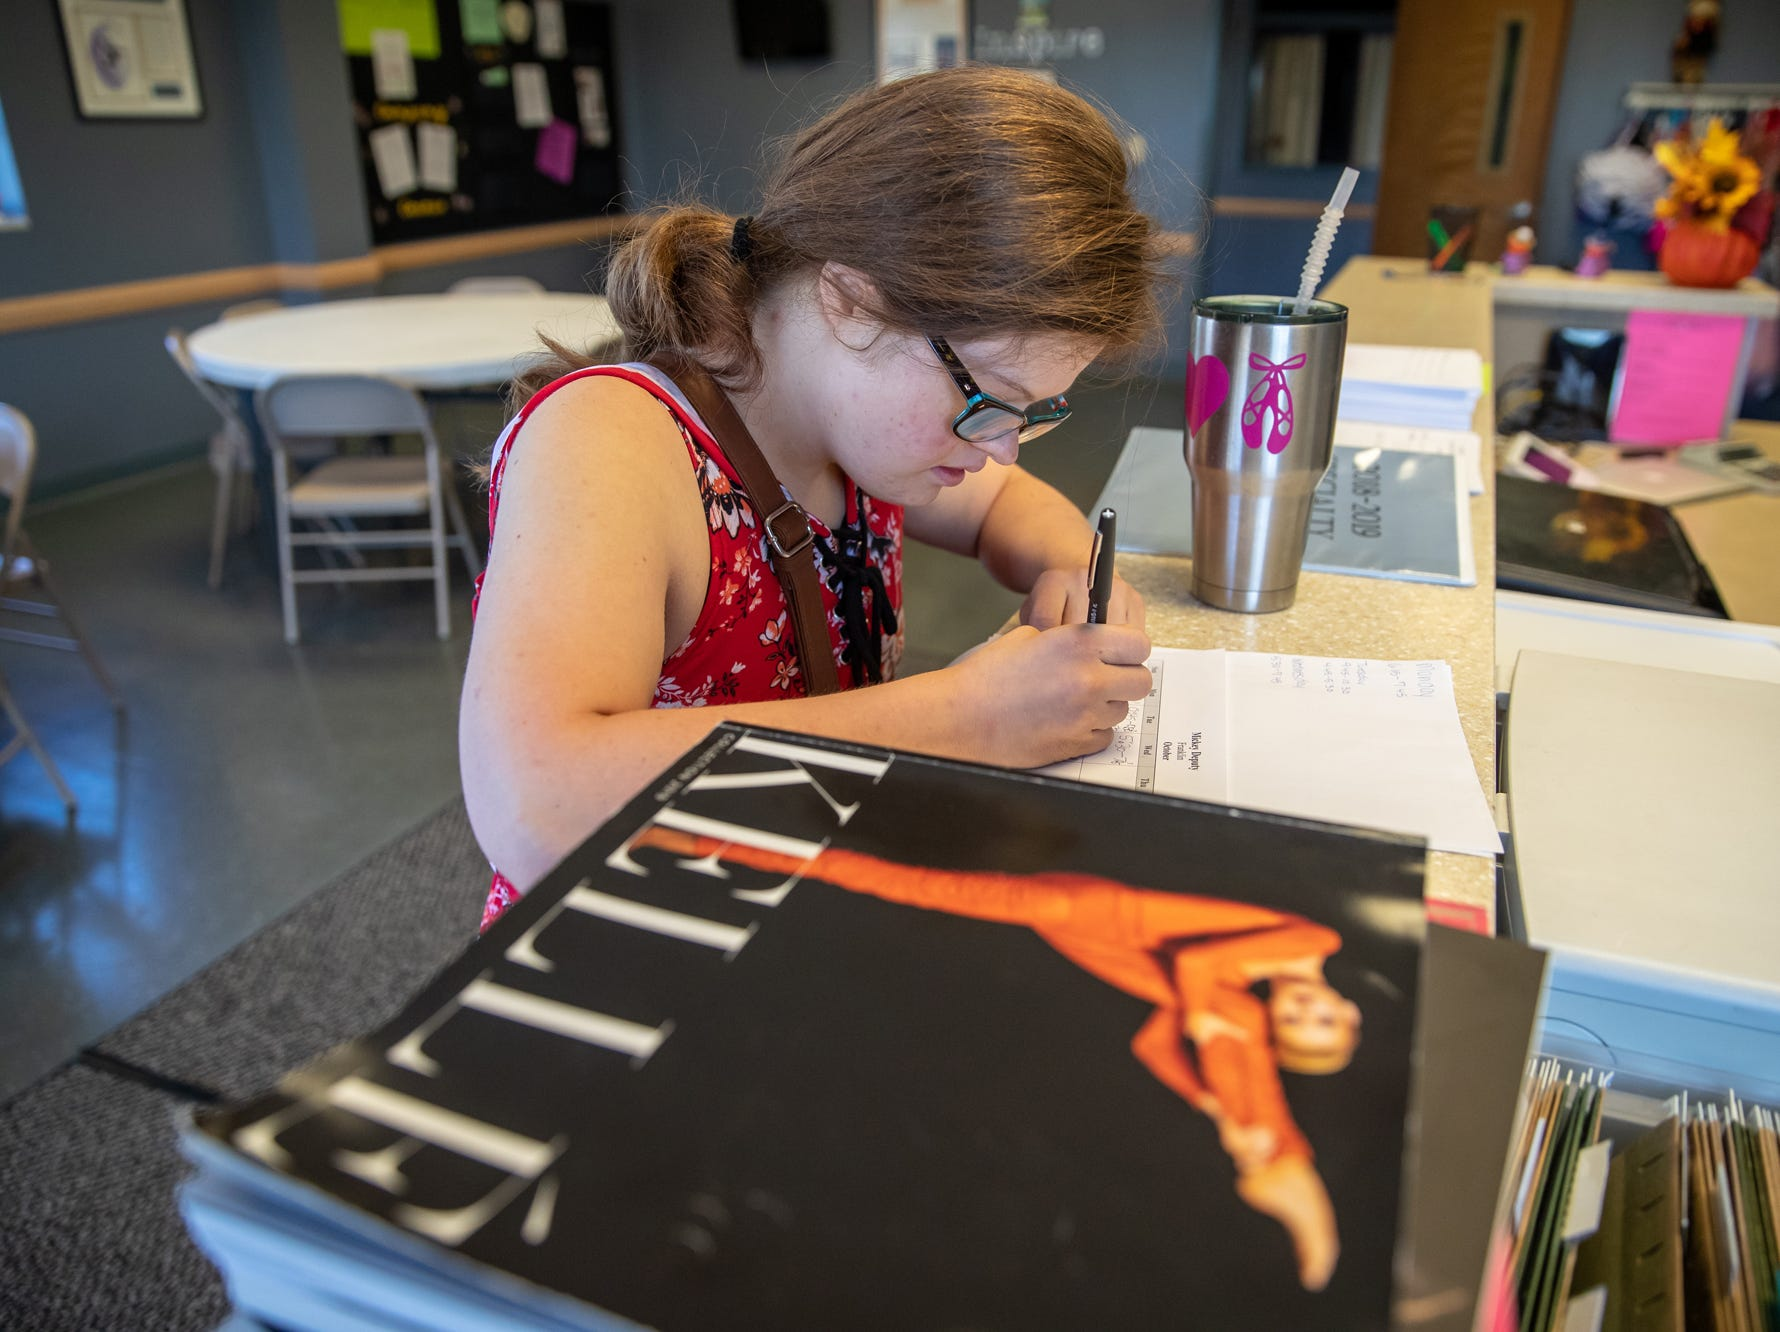 After catching a ride to work with fellow instructor Emily McCullough, Mickey fills out her schedule and timesheet at Style Dance Academy in Franklin, Ind., on Tuesday, Oct. 9, 2018.